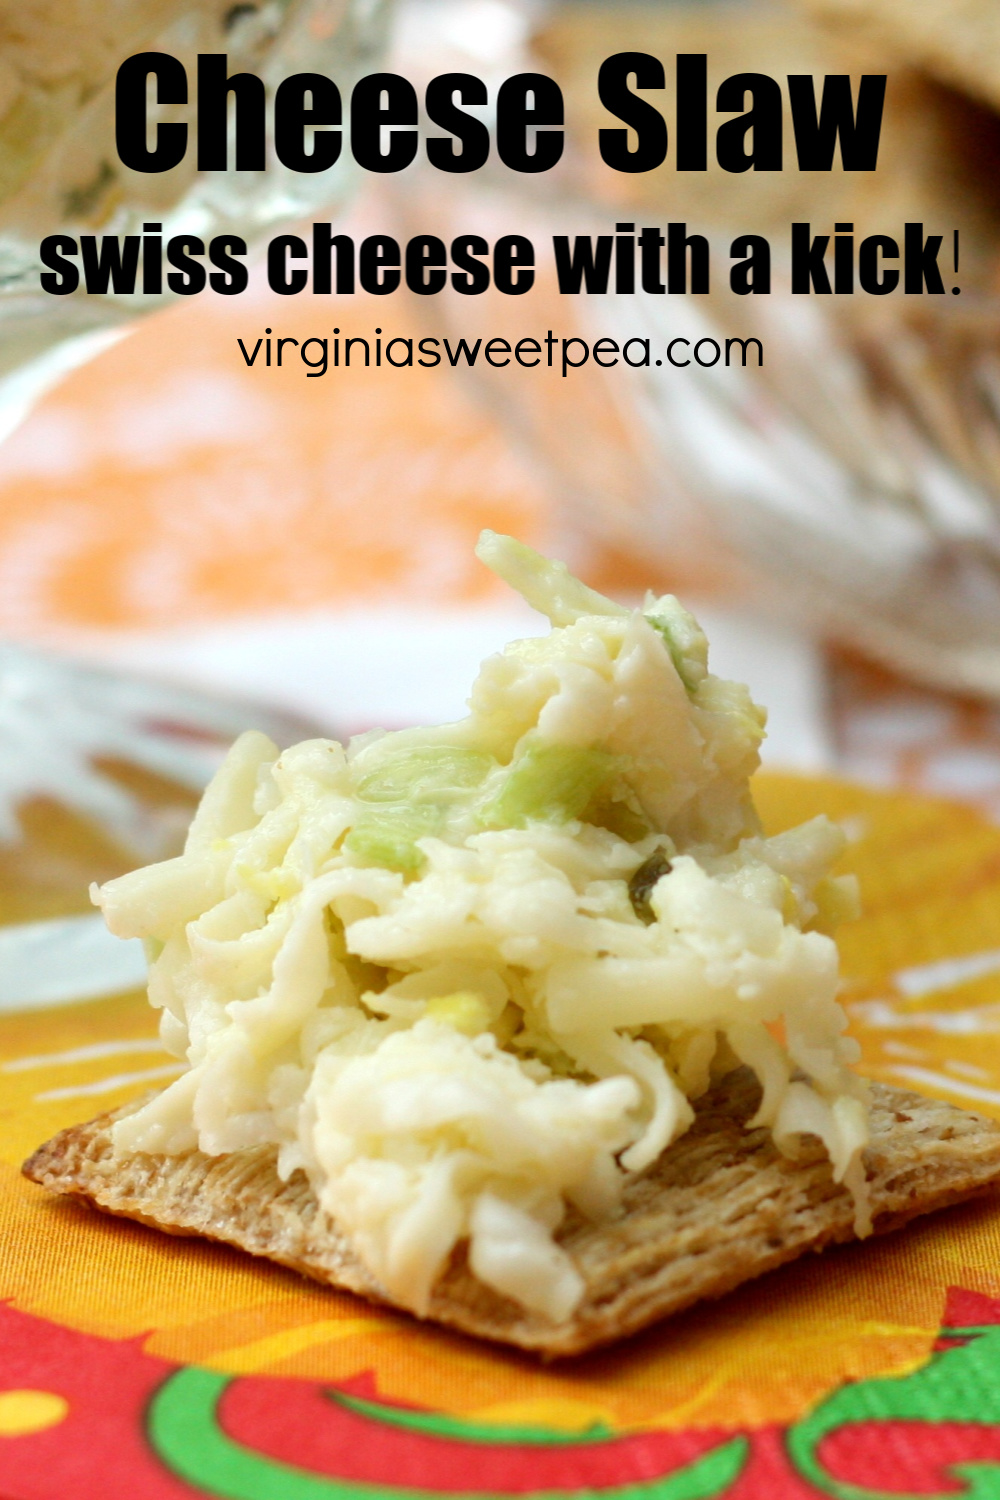 Cheese Slaw - This dip made with swiss cheese, green onion, jalapenos and pepperoncinis is always a hit at parties. Serve it on crackers, with Frito dippers, or on a baked potato. #dip #diprecipe #cheesespread #appetizer via @spaula